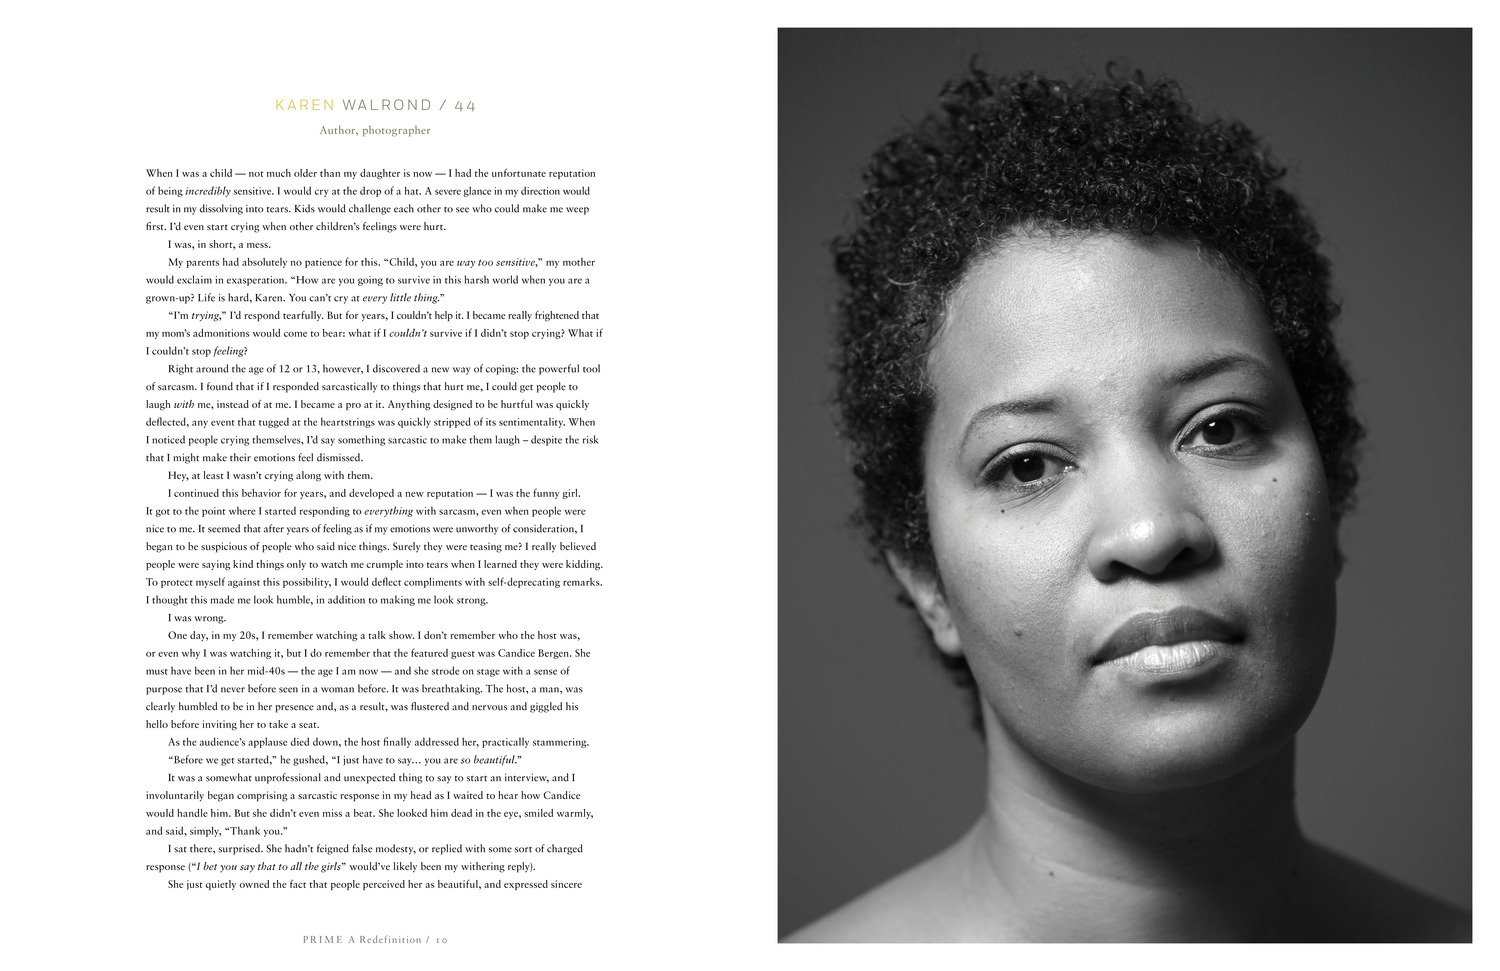 Karen Walrond: One of the unretouched, powerful, inspiring women photographed for Peter Freed's Prime